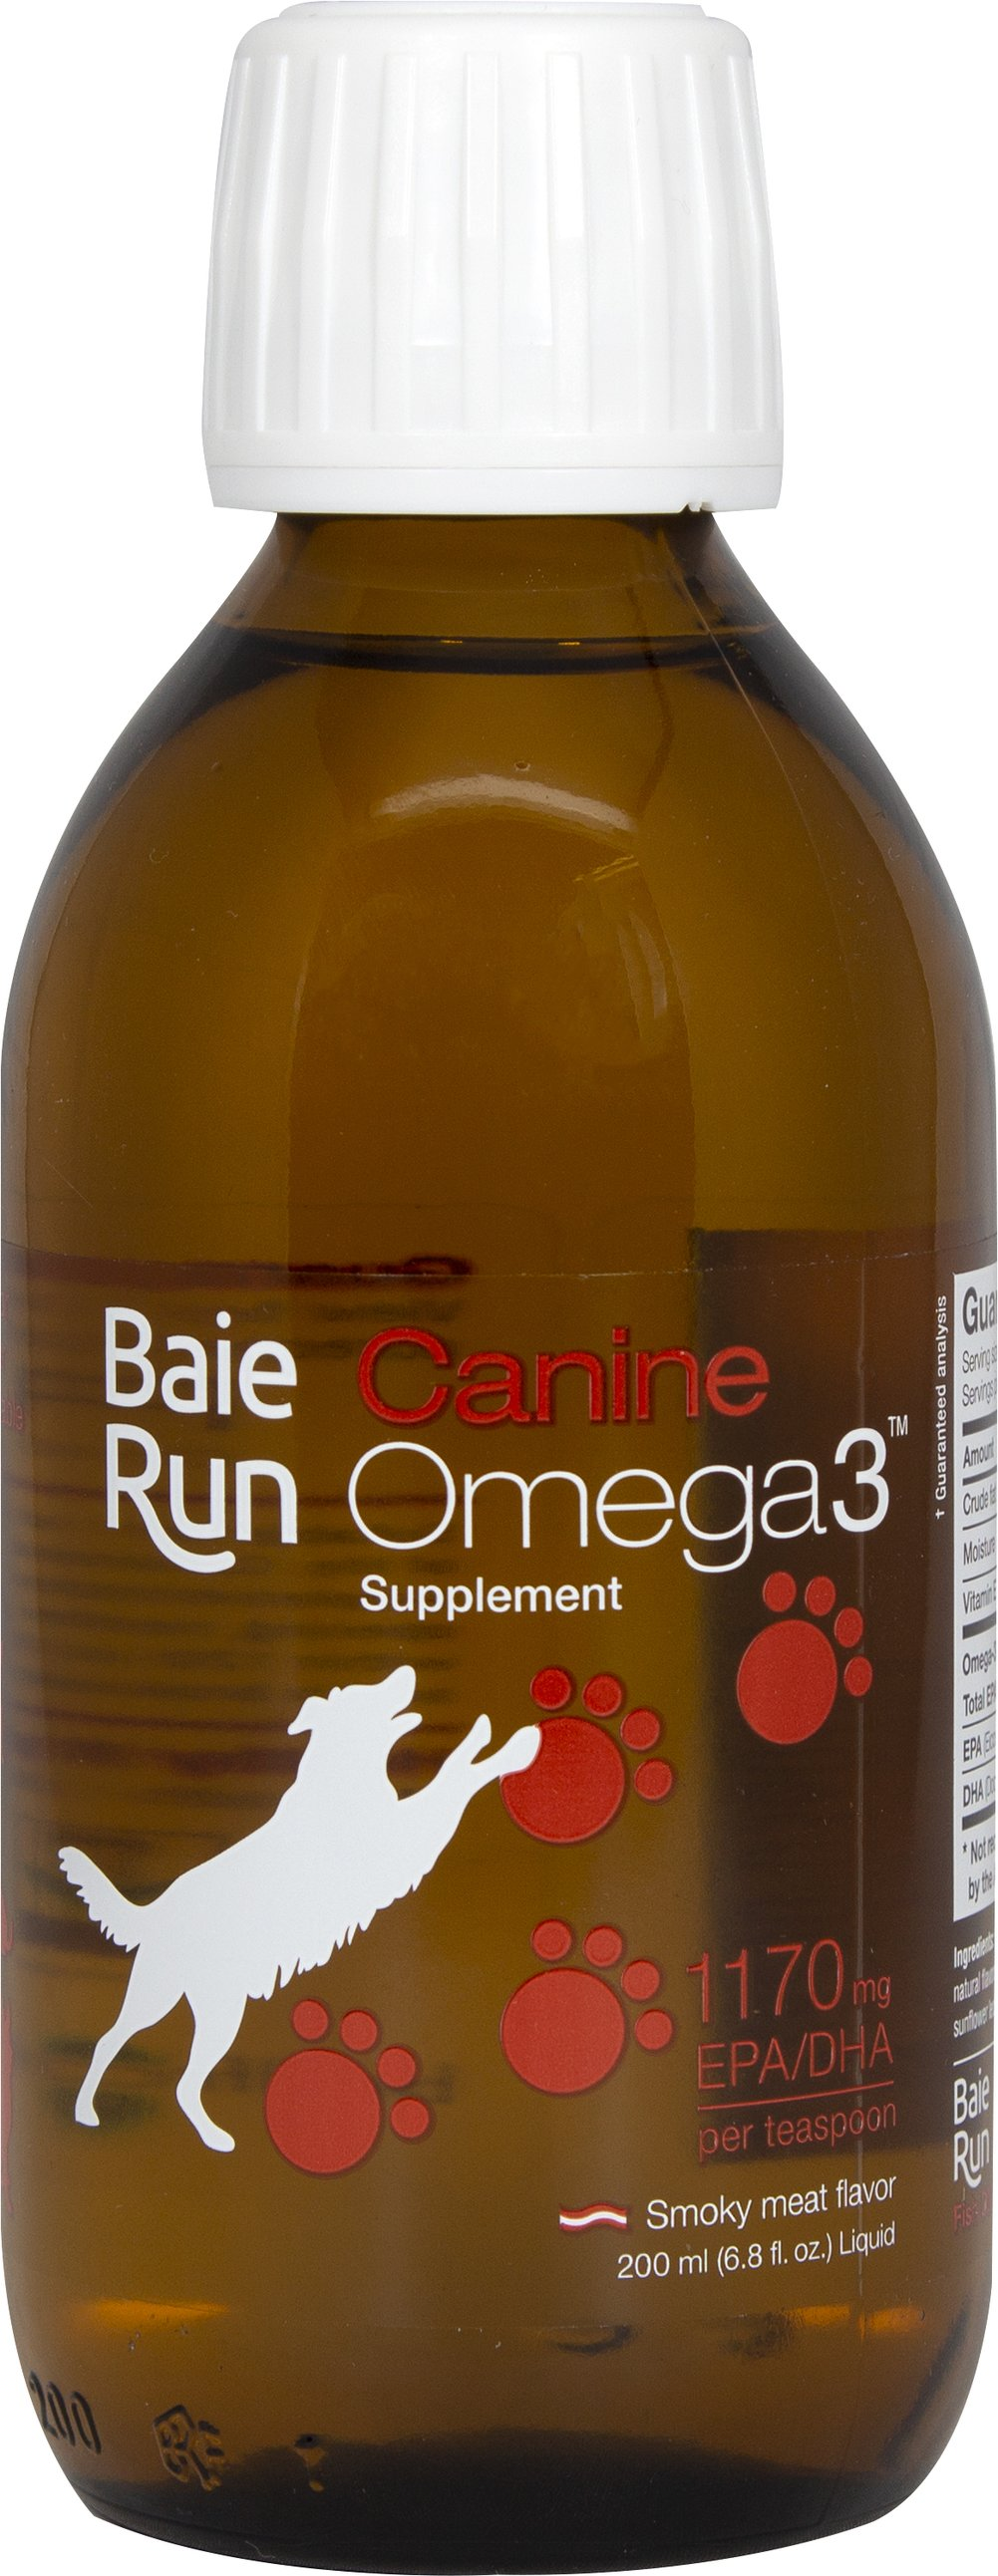 Canine Omega-3 <strong></strong><p><strong>From the Manufacturer's Label:</strong></p><p>Ascenta Canine Omega 3 EPA & DHA fish oil supplement is beneficial to maintain joint health, skin and coat health, renal function, growth and reproduction, heart health and endurance and immune system health.</p><p>Suitable for dogs in all life stages.</p><p>Canine Omega 3 is intended for supplemental feeding only.</p> 6.8 oz